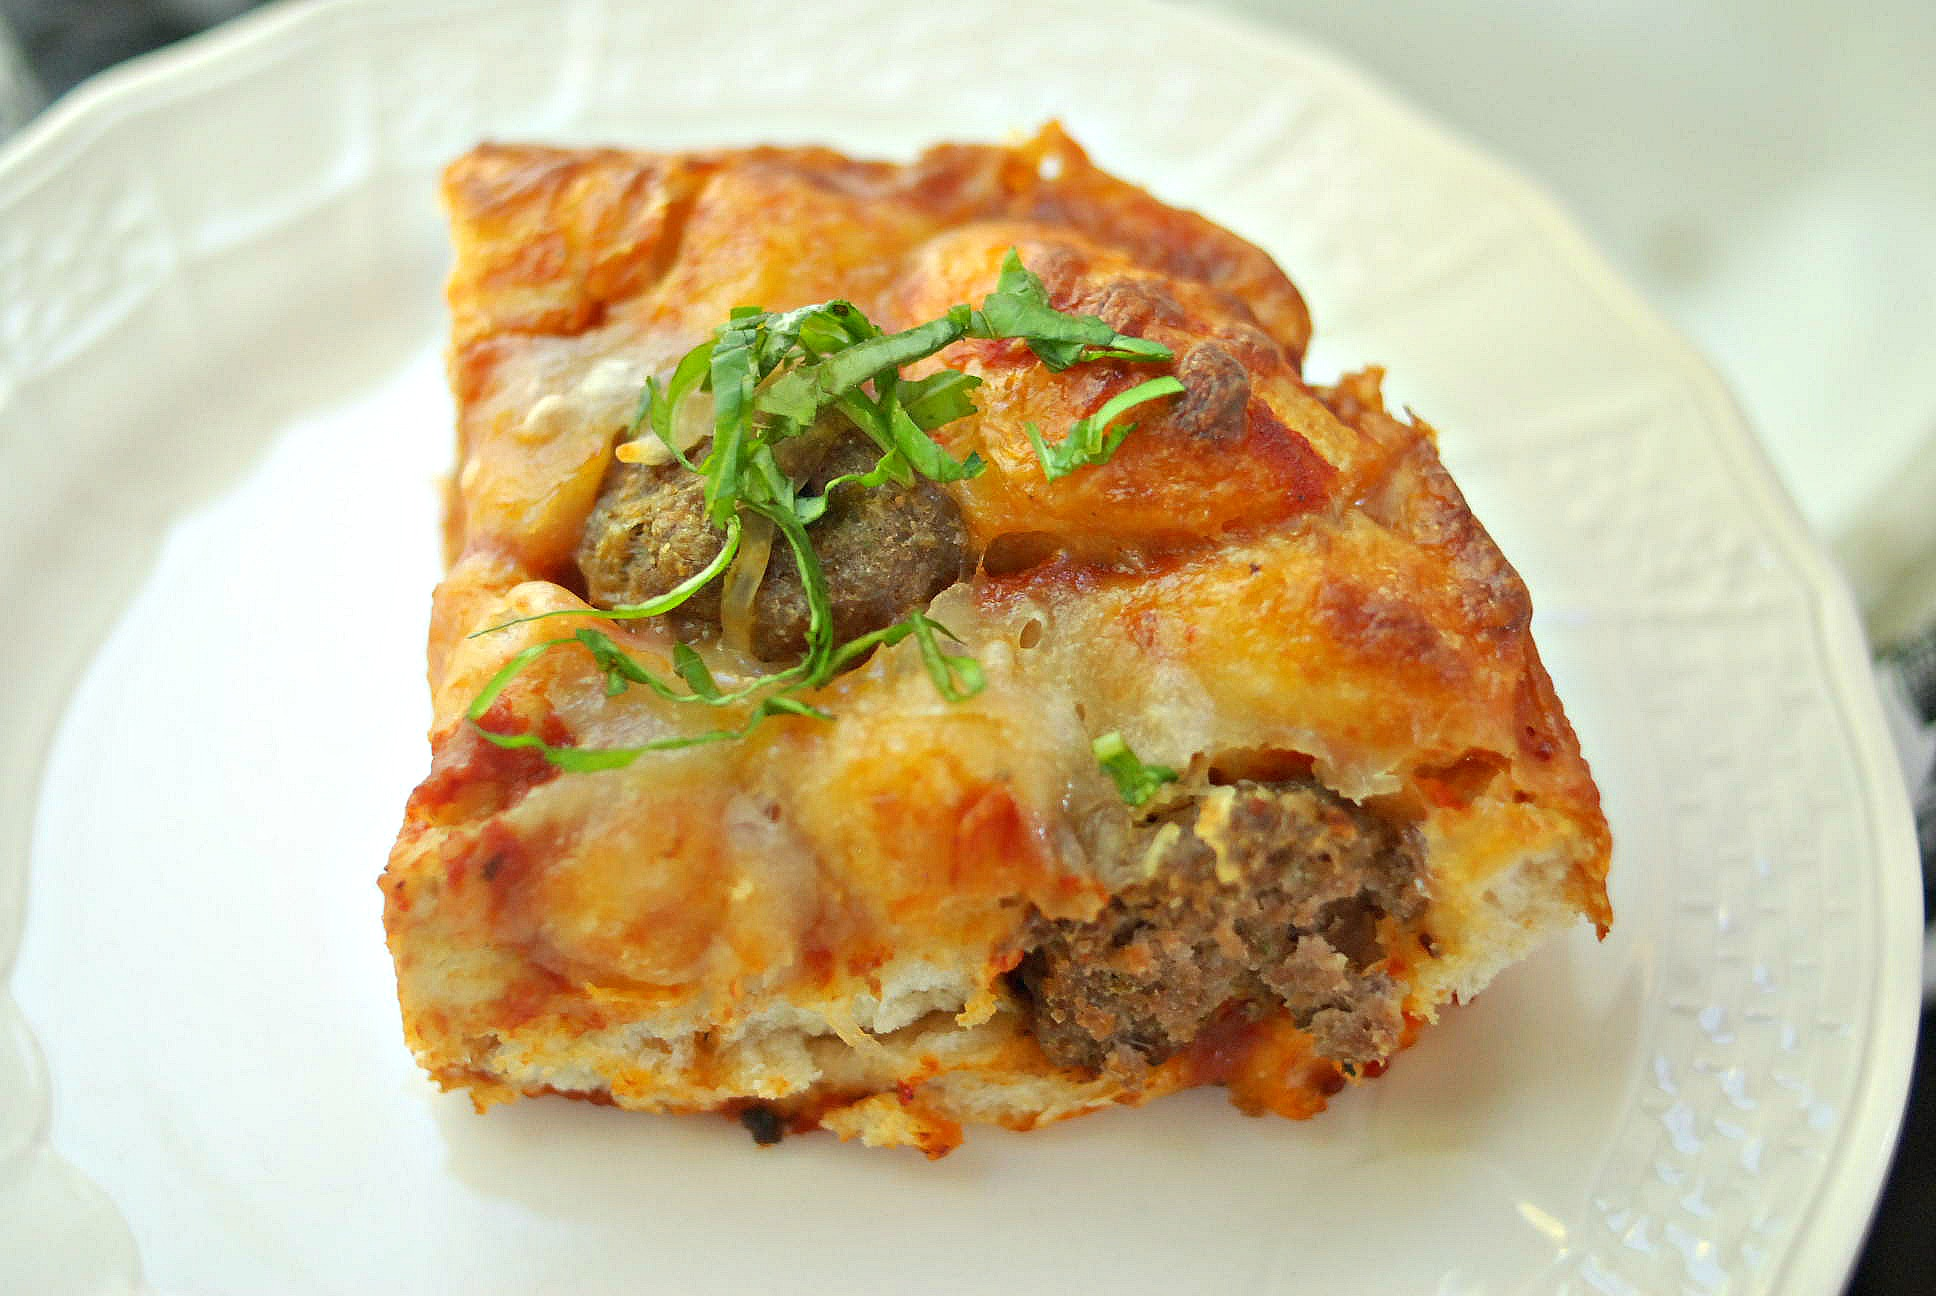 Meatball and Biscuit Bake